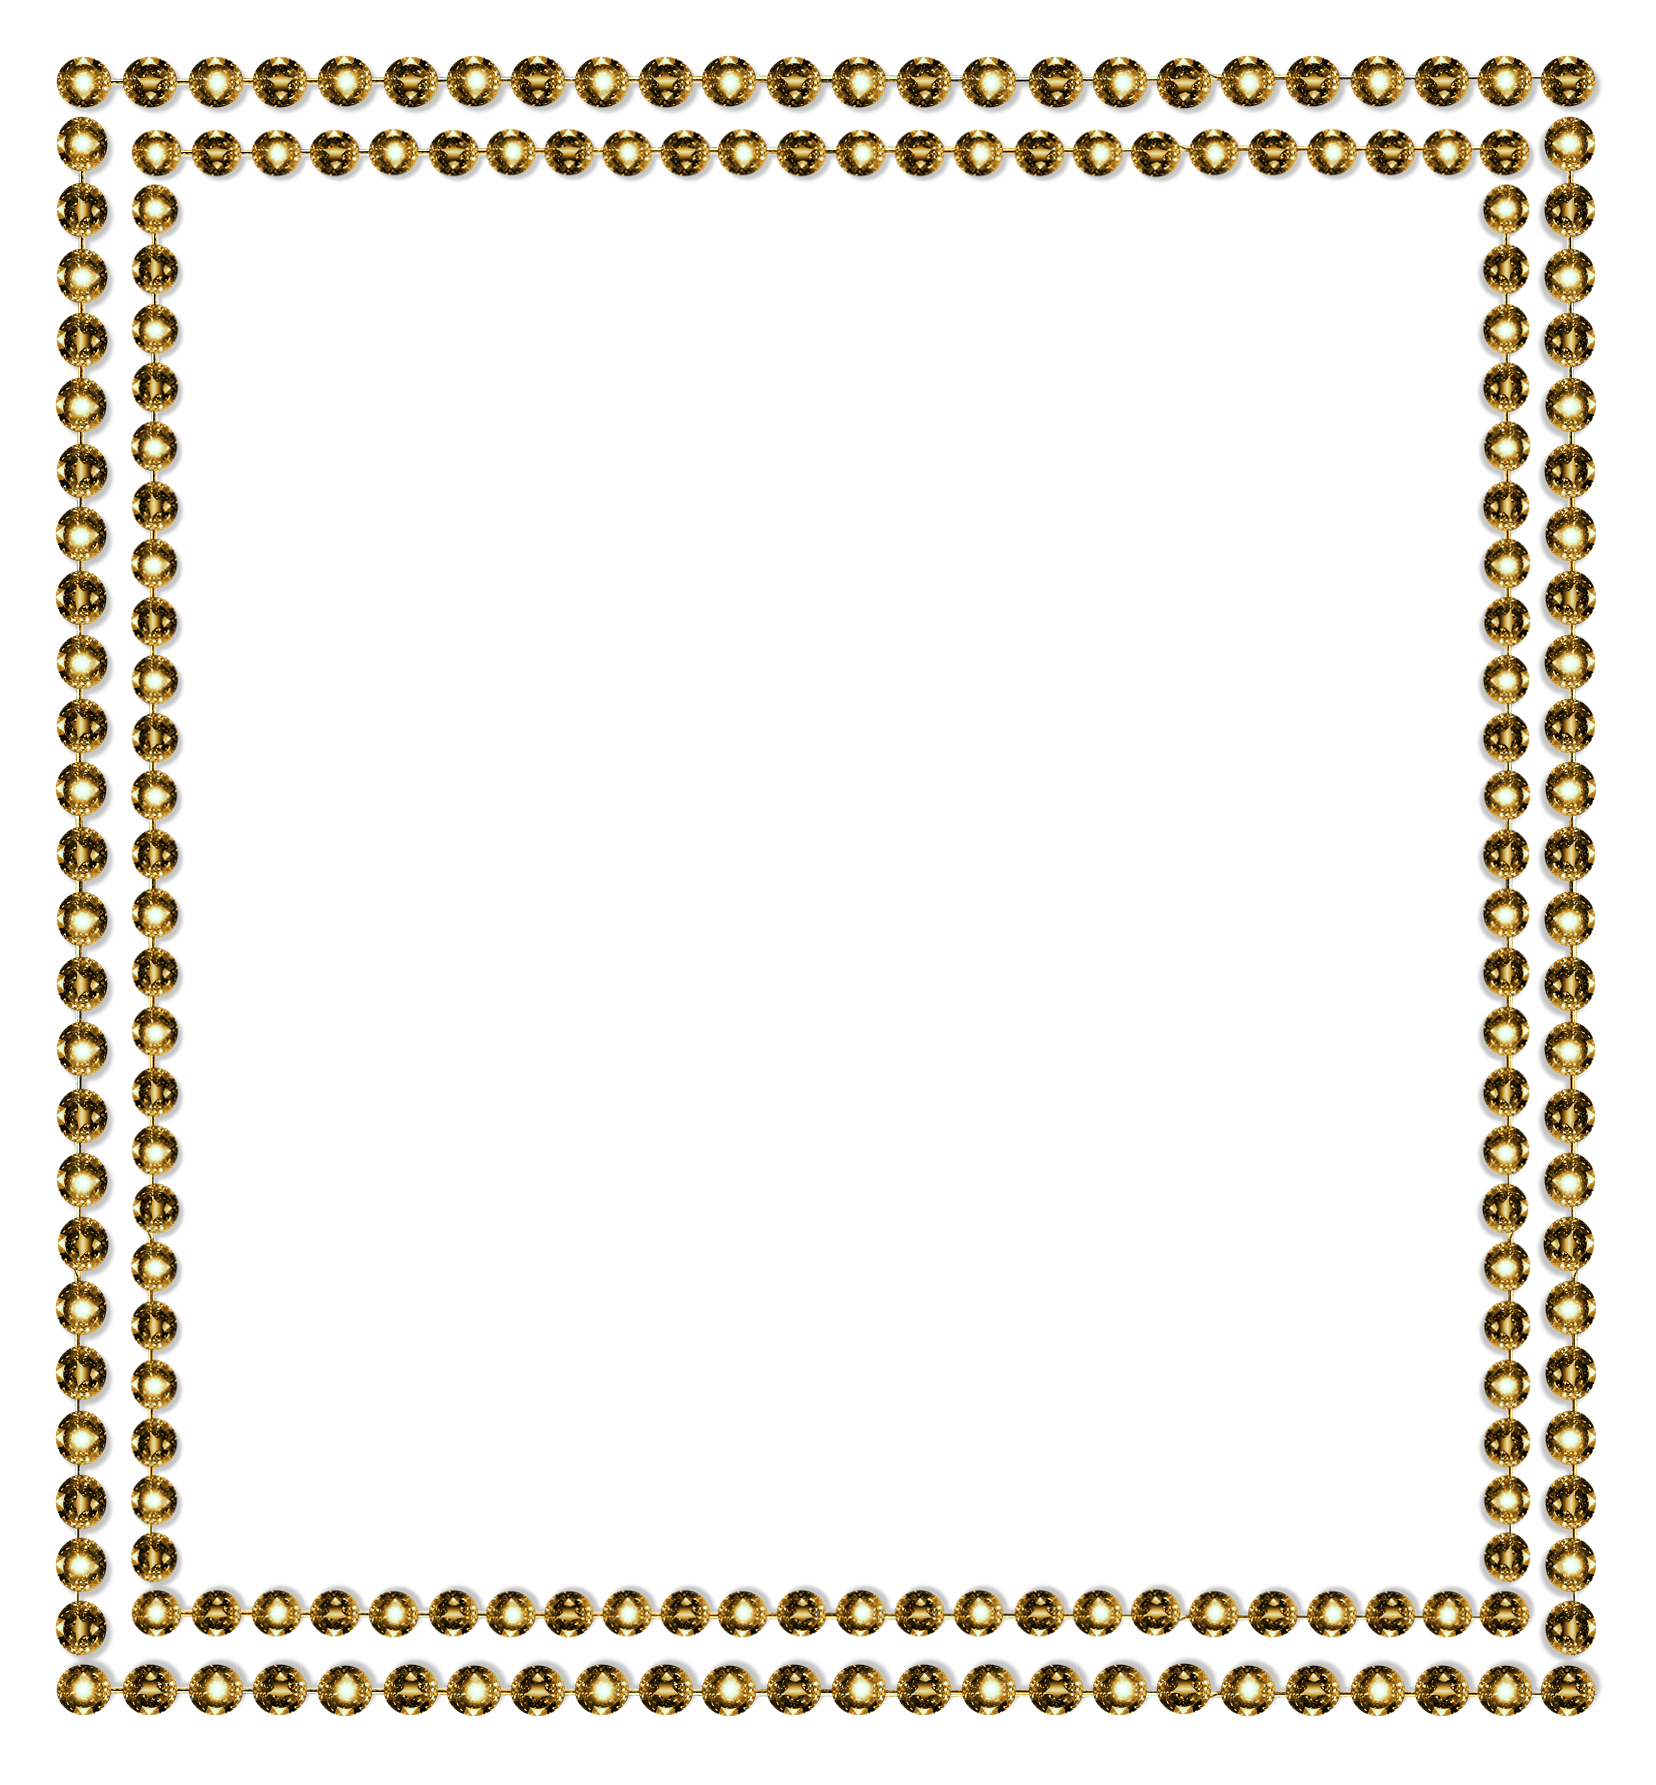 image black and white stock Borders clipart diamond. Border png gold by.